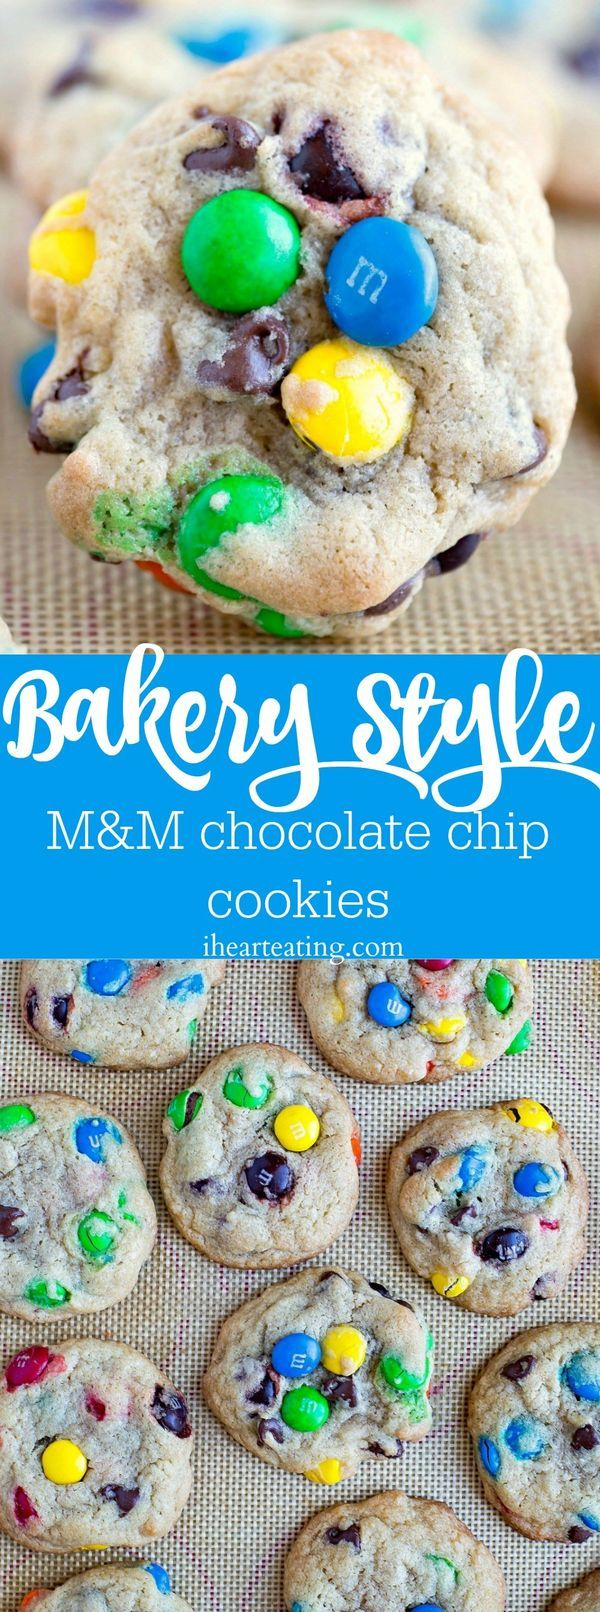 Bakery Style M&M Chocolate Chip Cookie Recipe